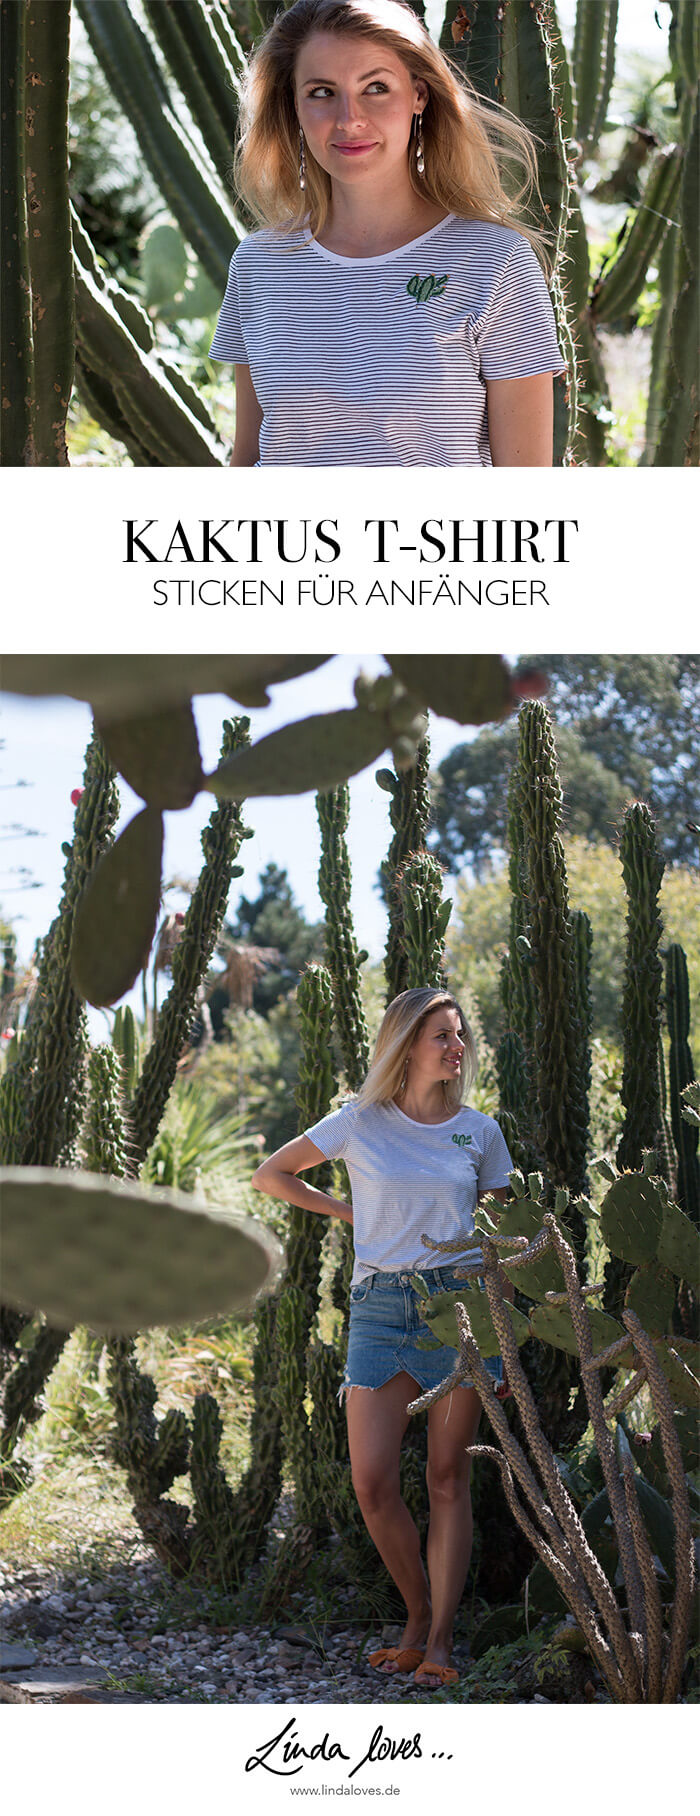 Kakatus sticken DIY Blog Anleitung Fashion Mode do-it-yourself